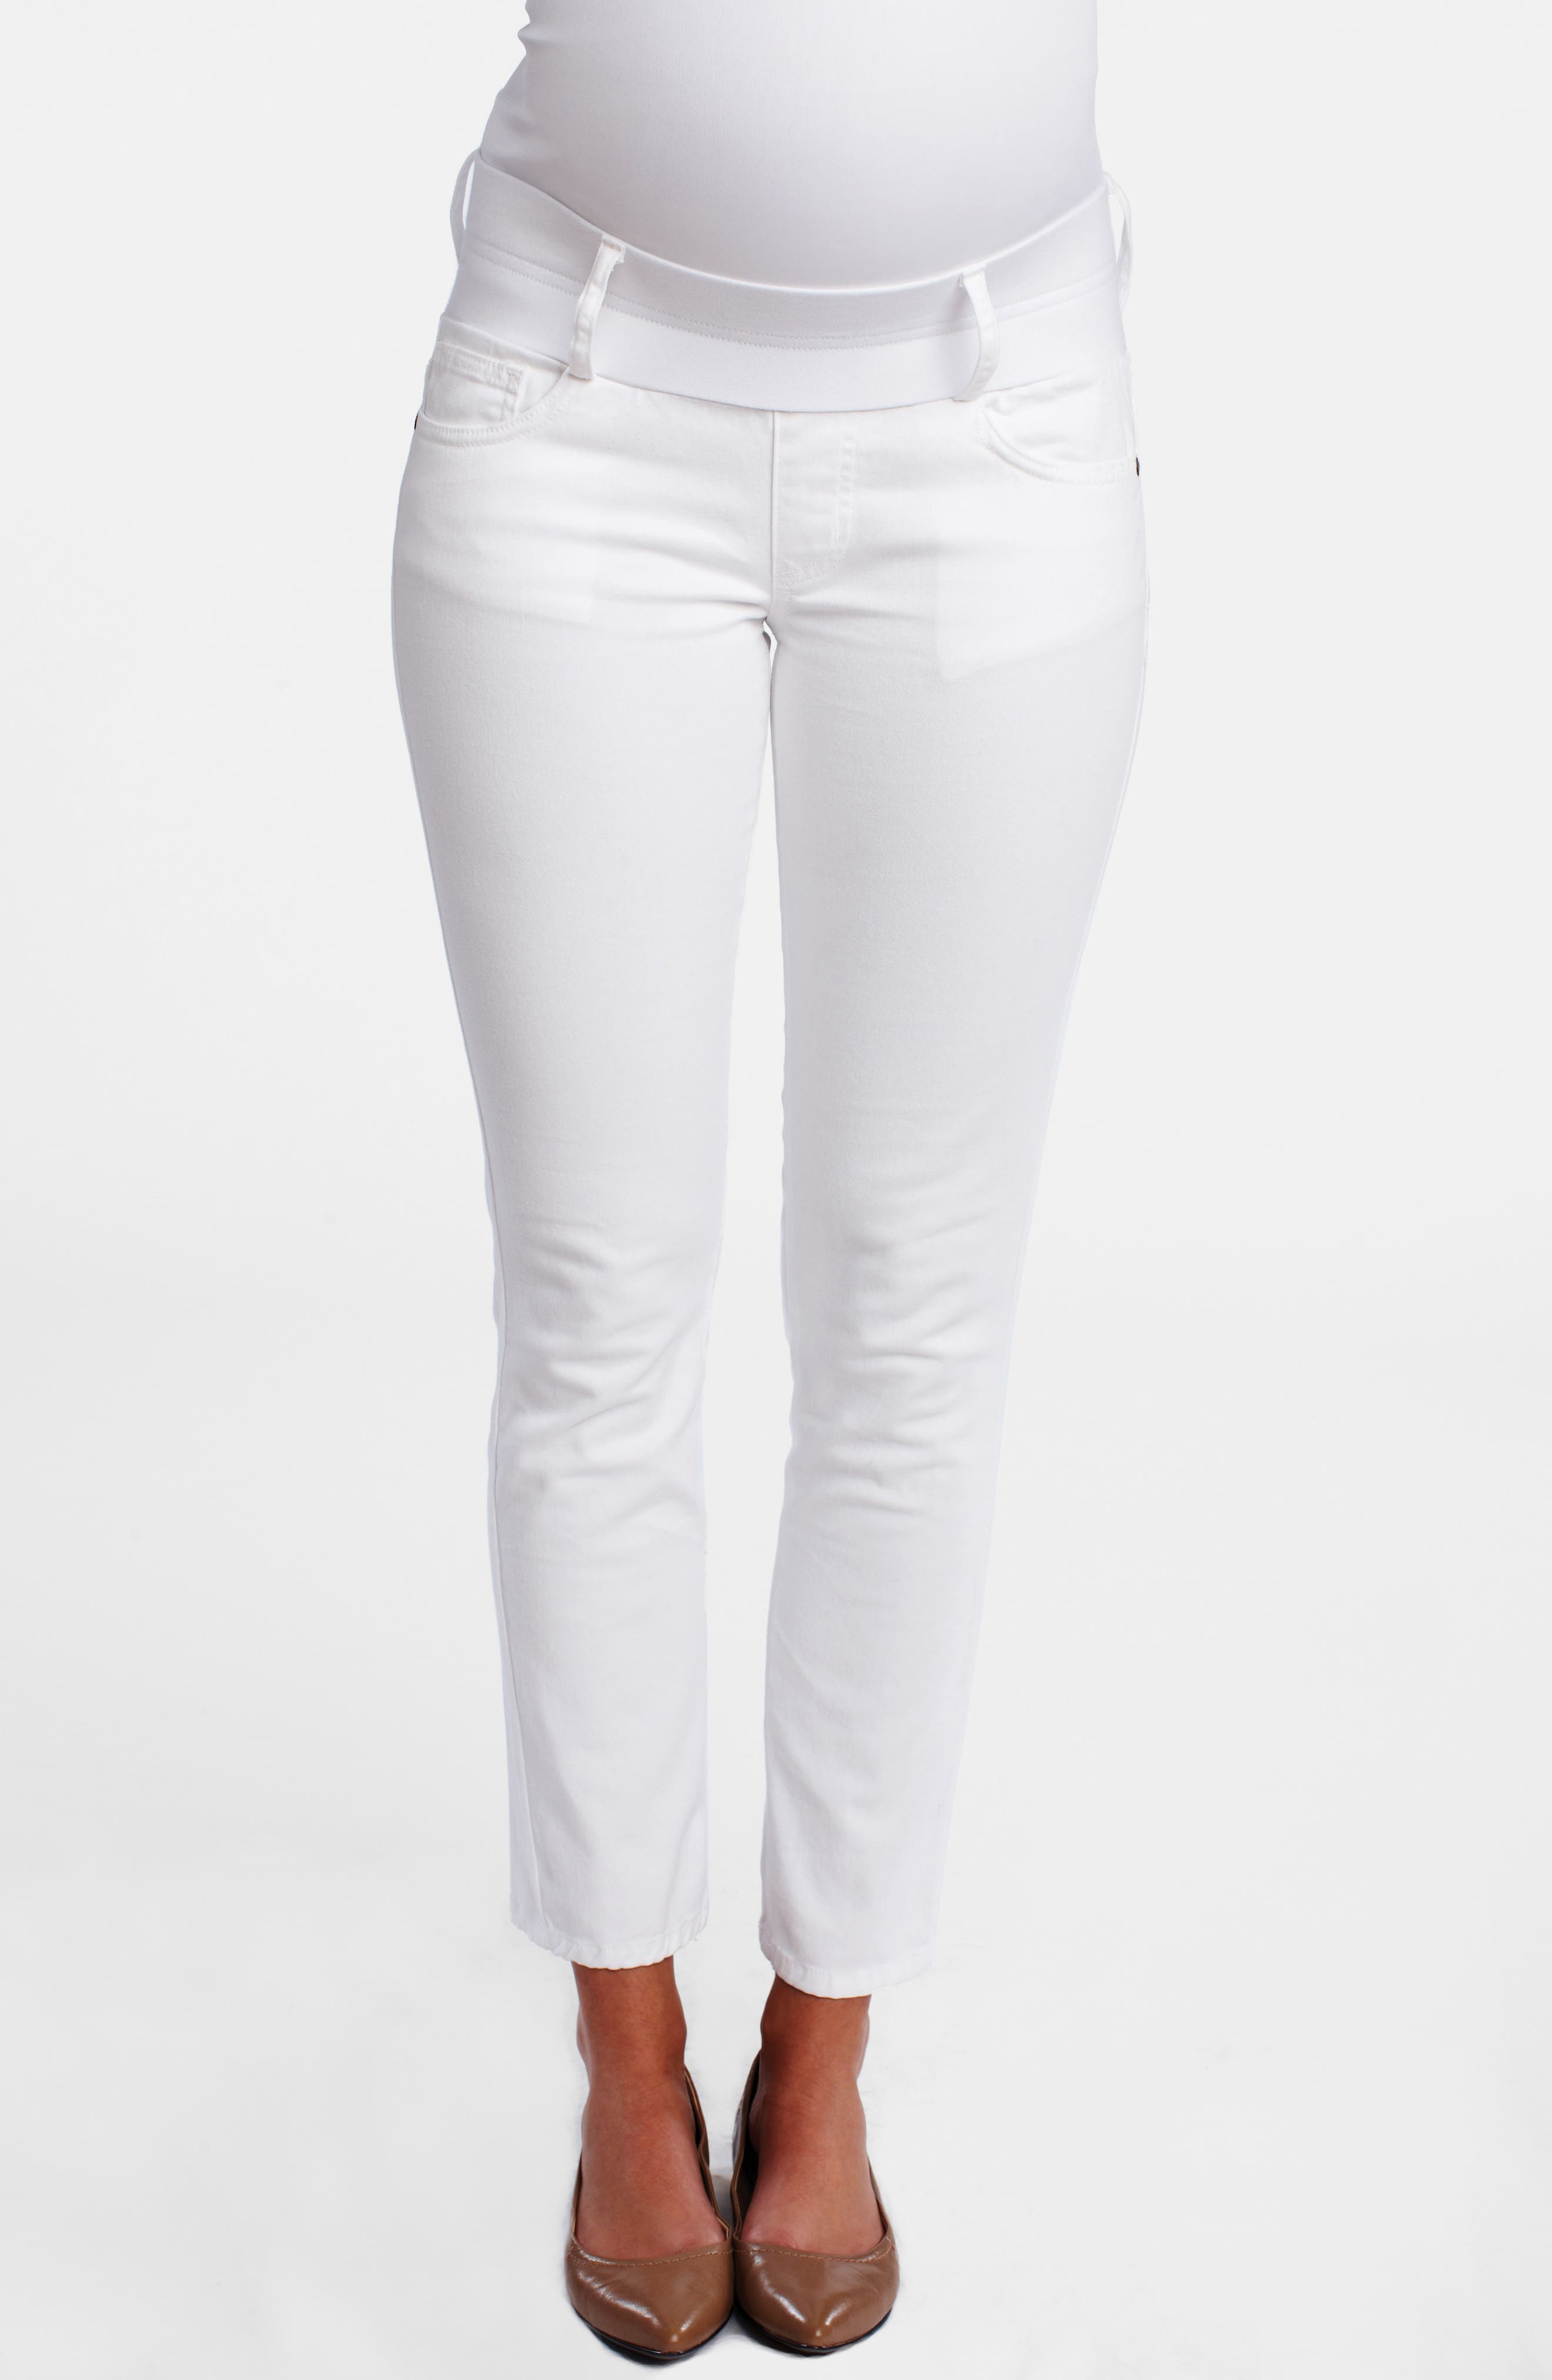 Maternity Skinny Ankle Stretch Jeans,                             Main thumbnail 1, color,                             100